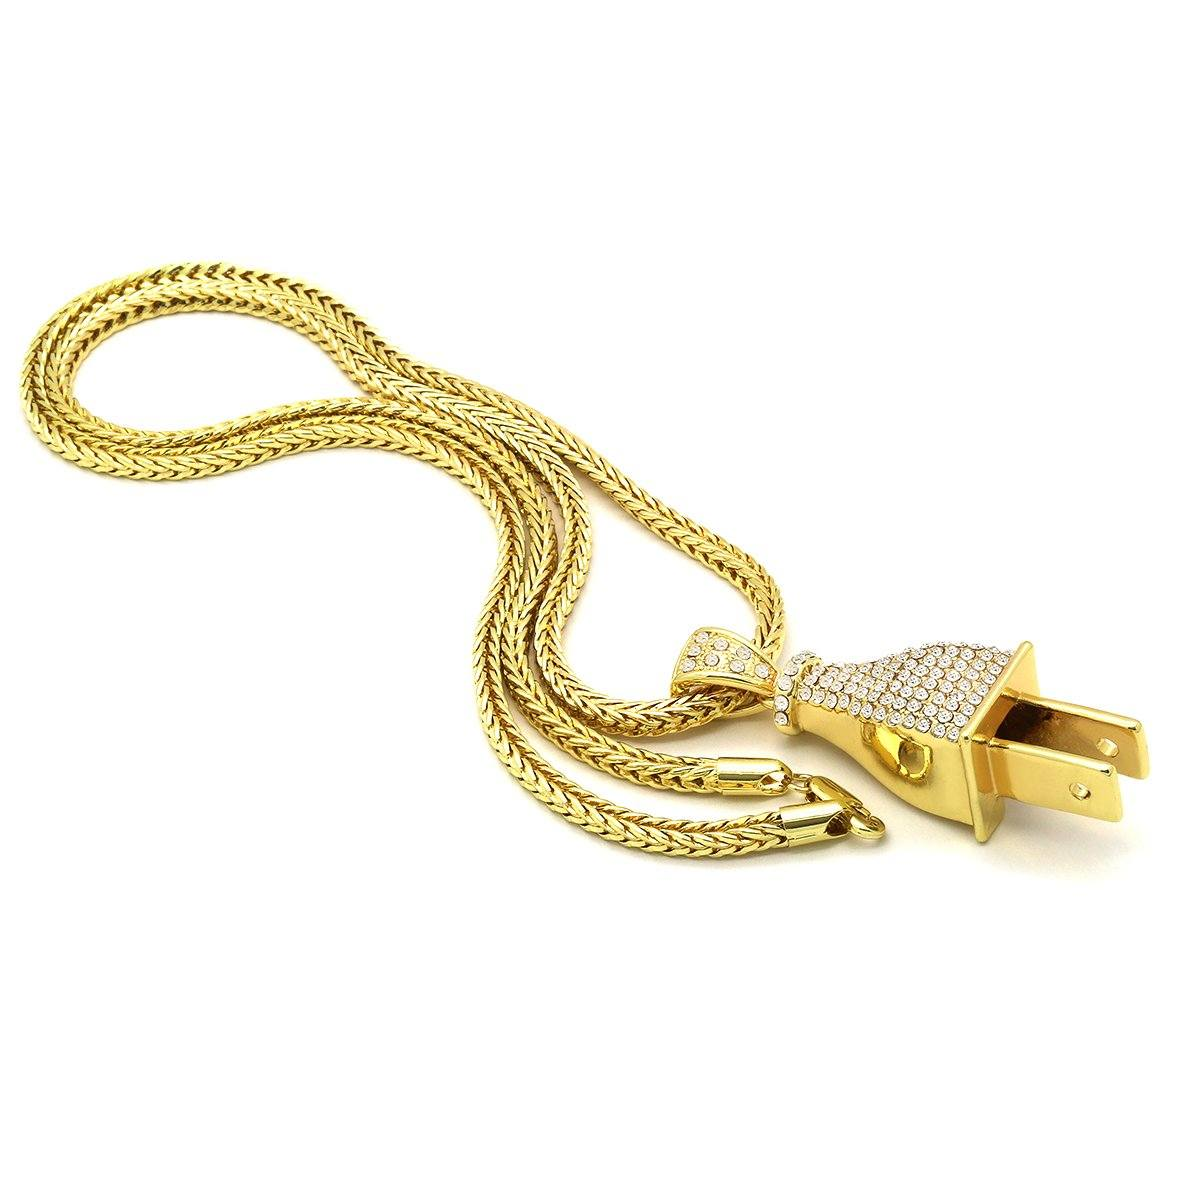 14k Gold Filled Cz Plug Pendant with Franco Chain